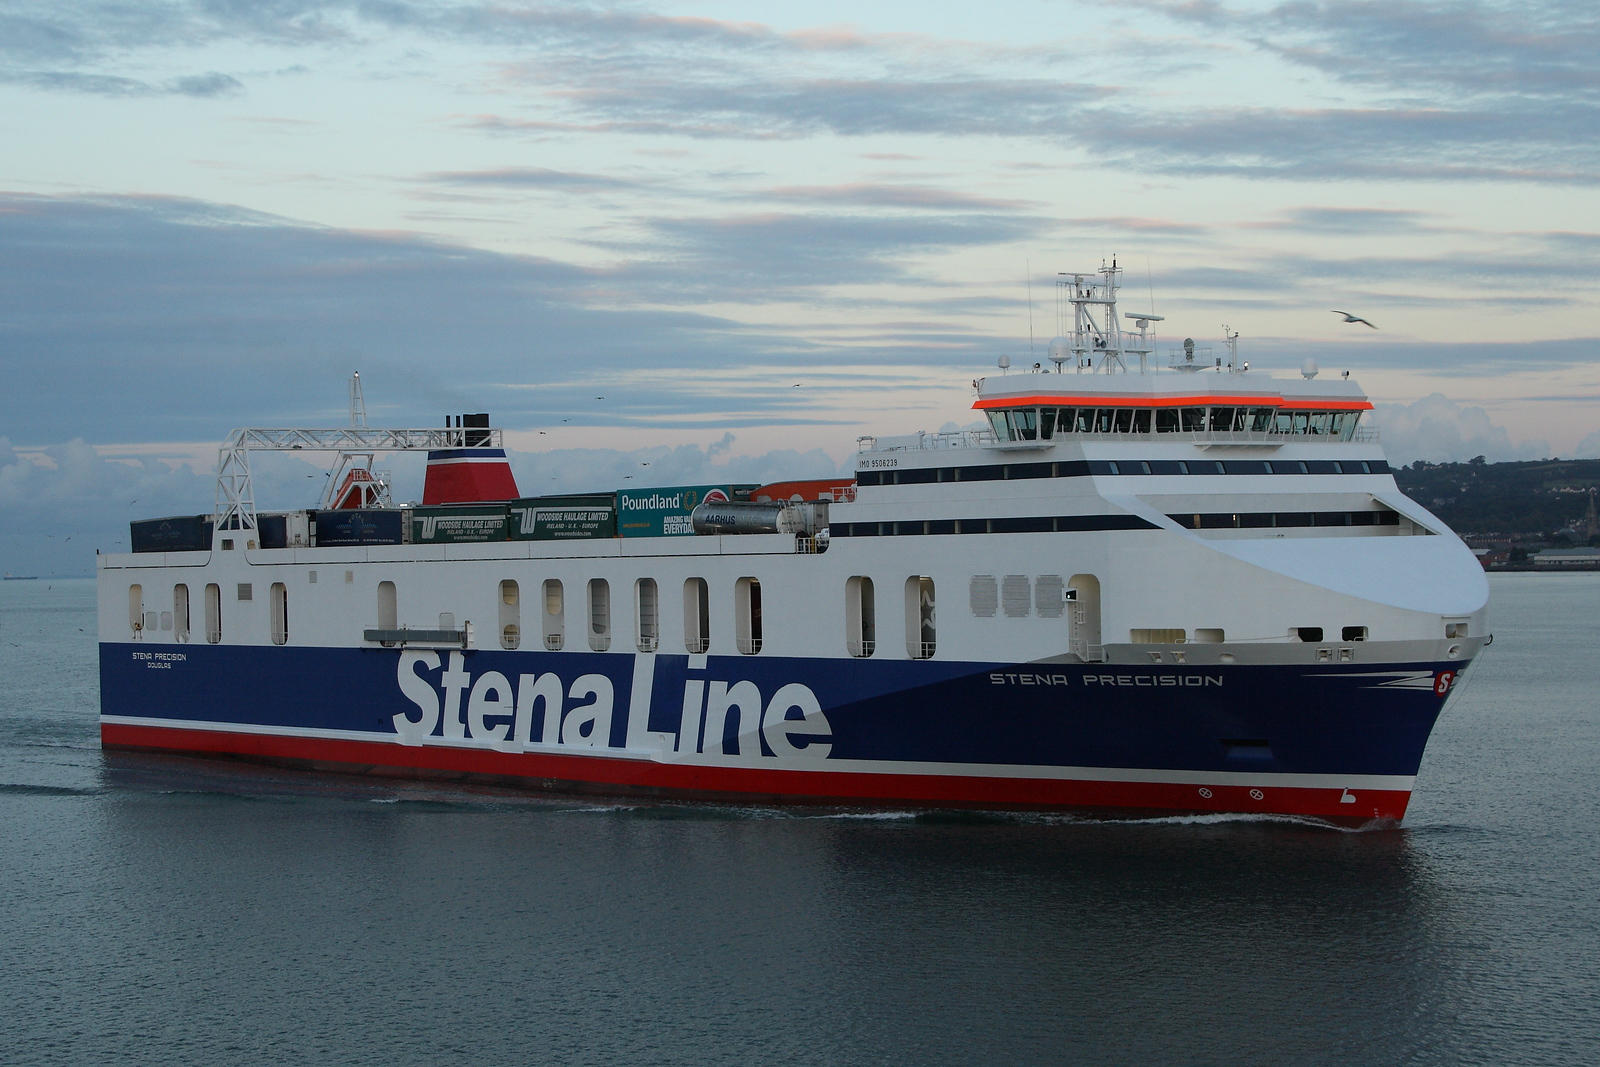 The Stena Precision arriving at Belfast Harbour. The vessel is owned by Seatruck Ferries and is on charter to Stena Line.